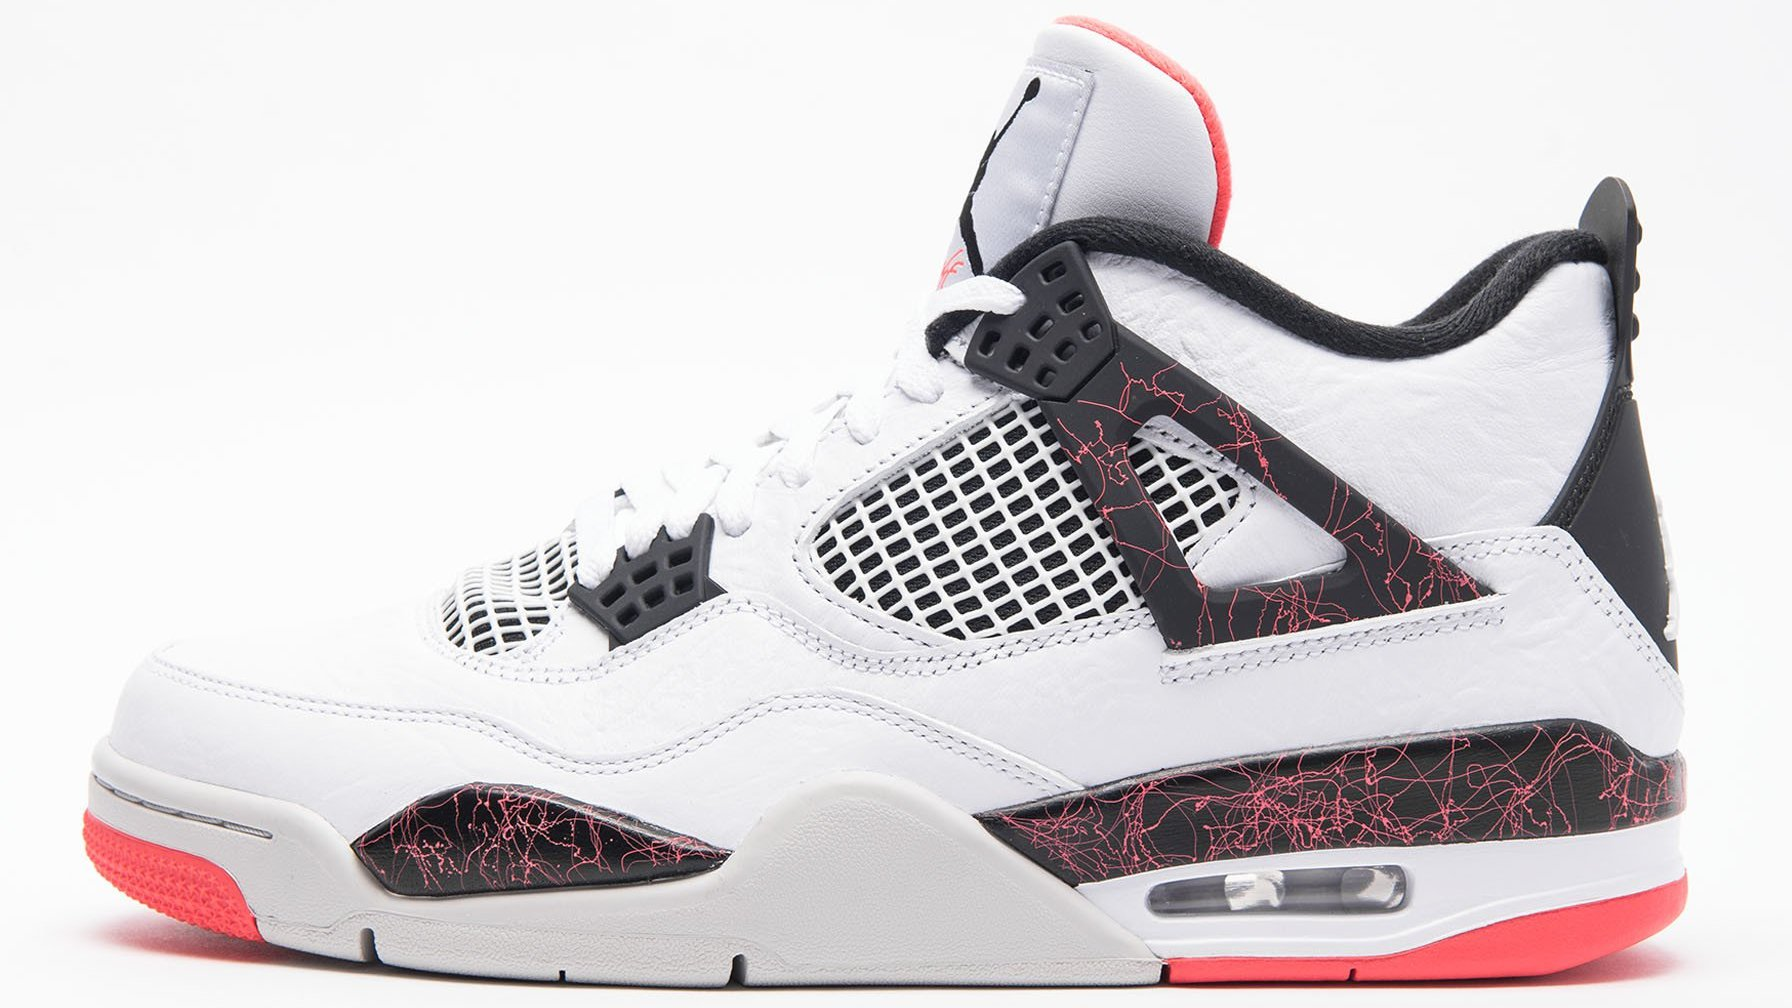 cceeae94a467 Air Jordan 4 Retro  White Black-Light Crimson-Pale Citron  308497-116  Release Date